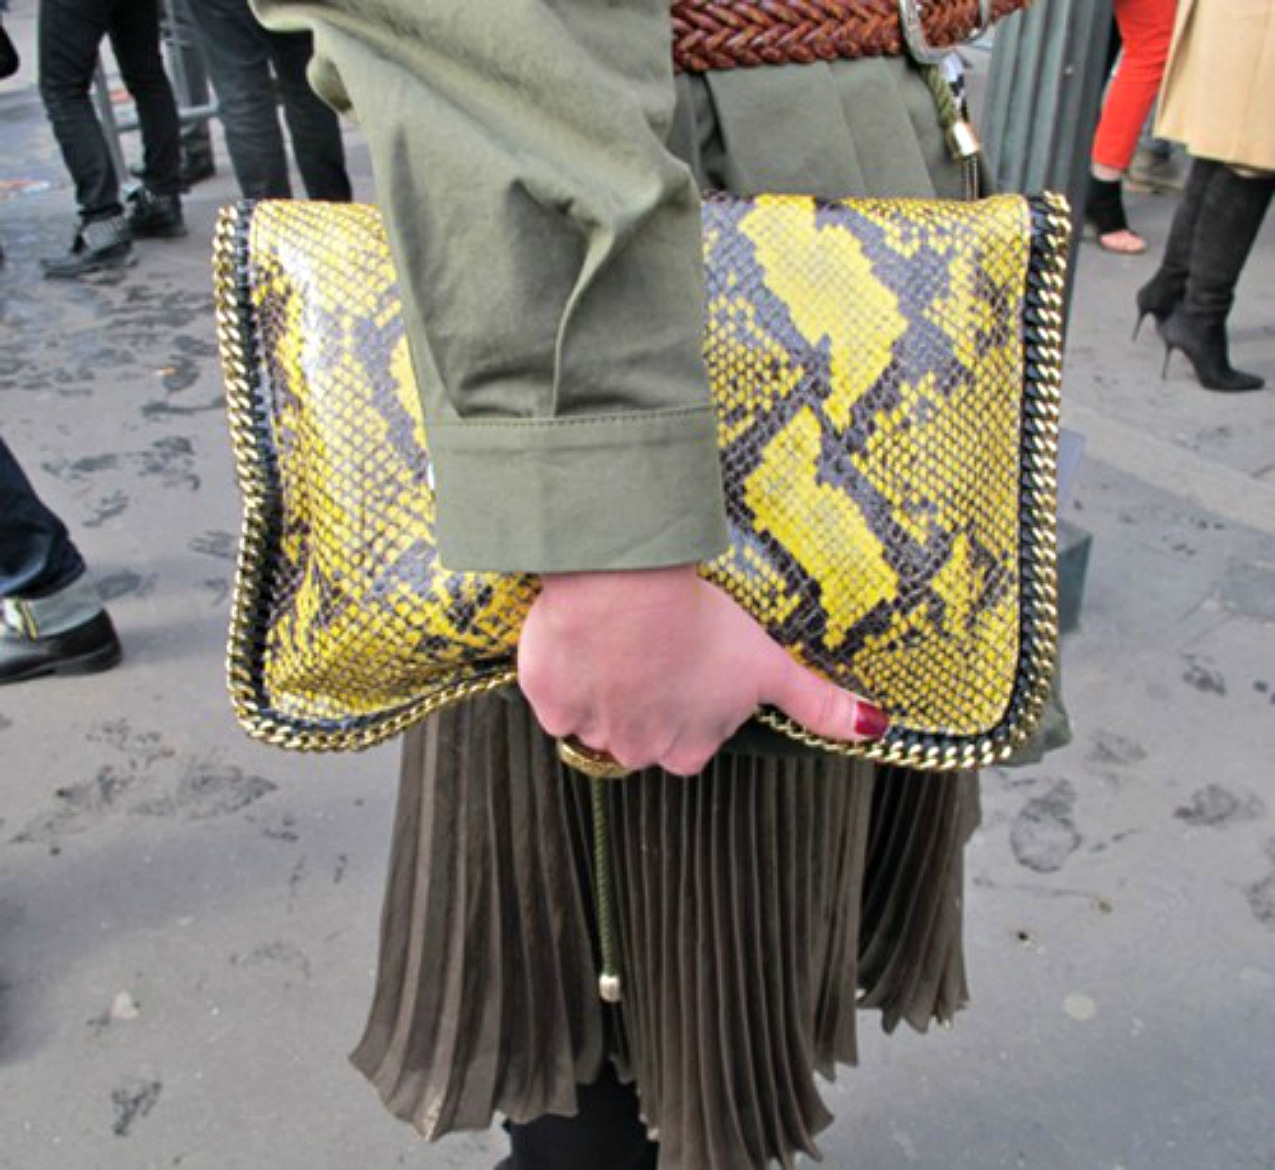 alessia milanese, thechilicool, fashion blog, fashion blogger,it bags come reinterpretare in chiave eco chic la moda con la falabella di stella mc cartney